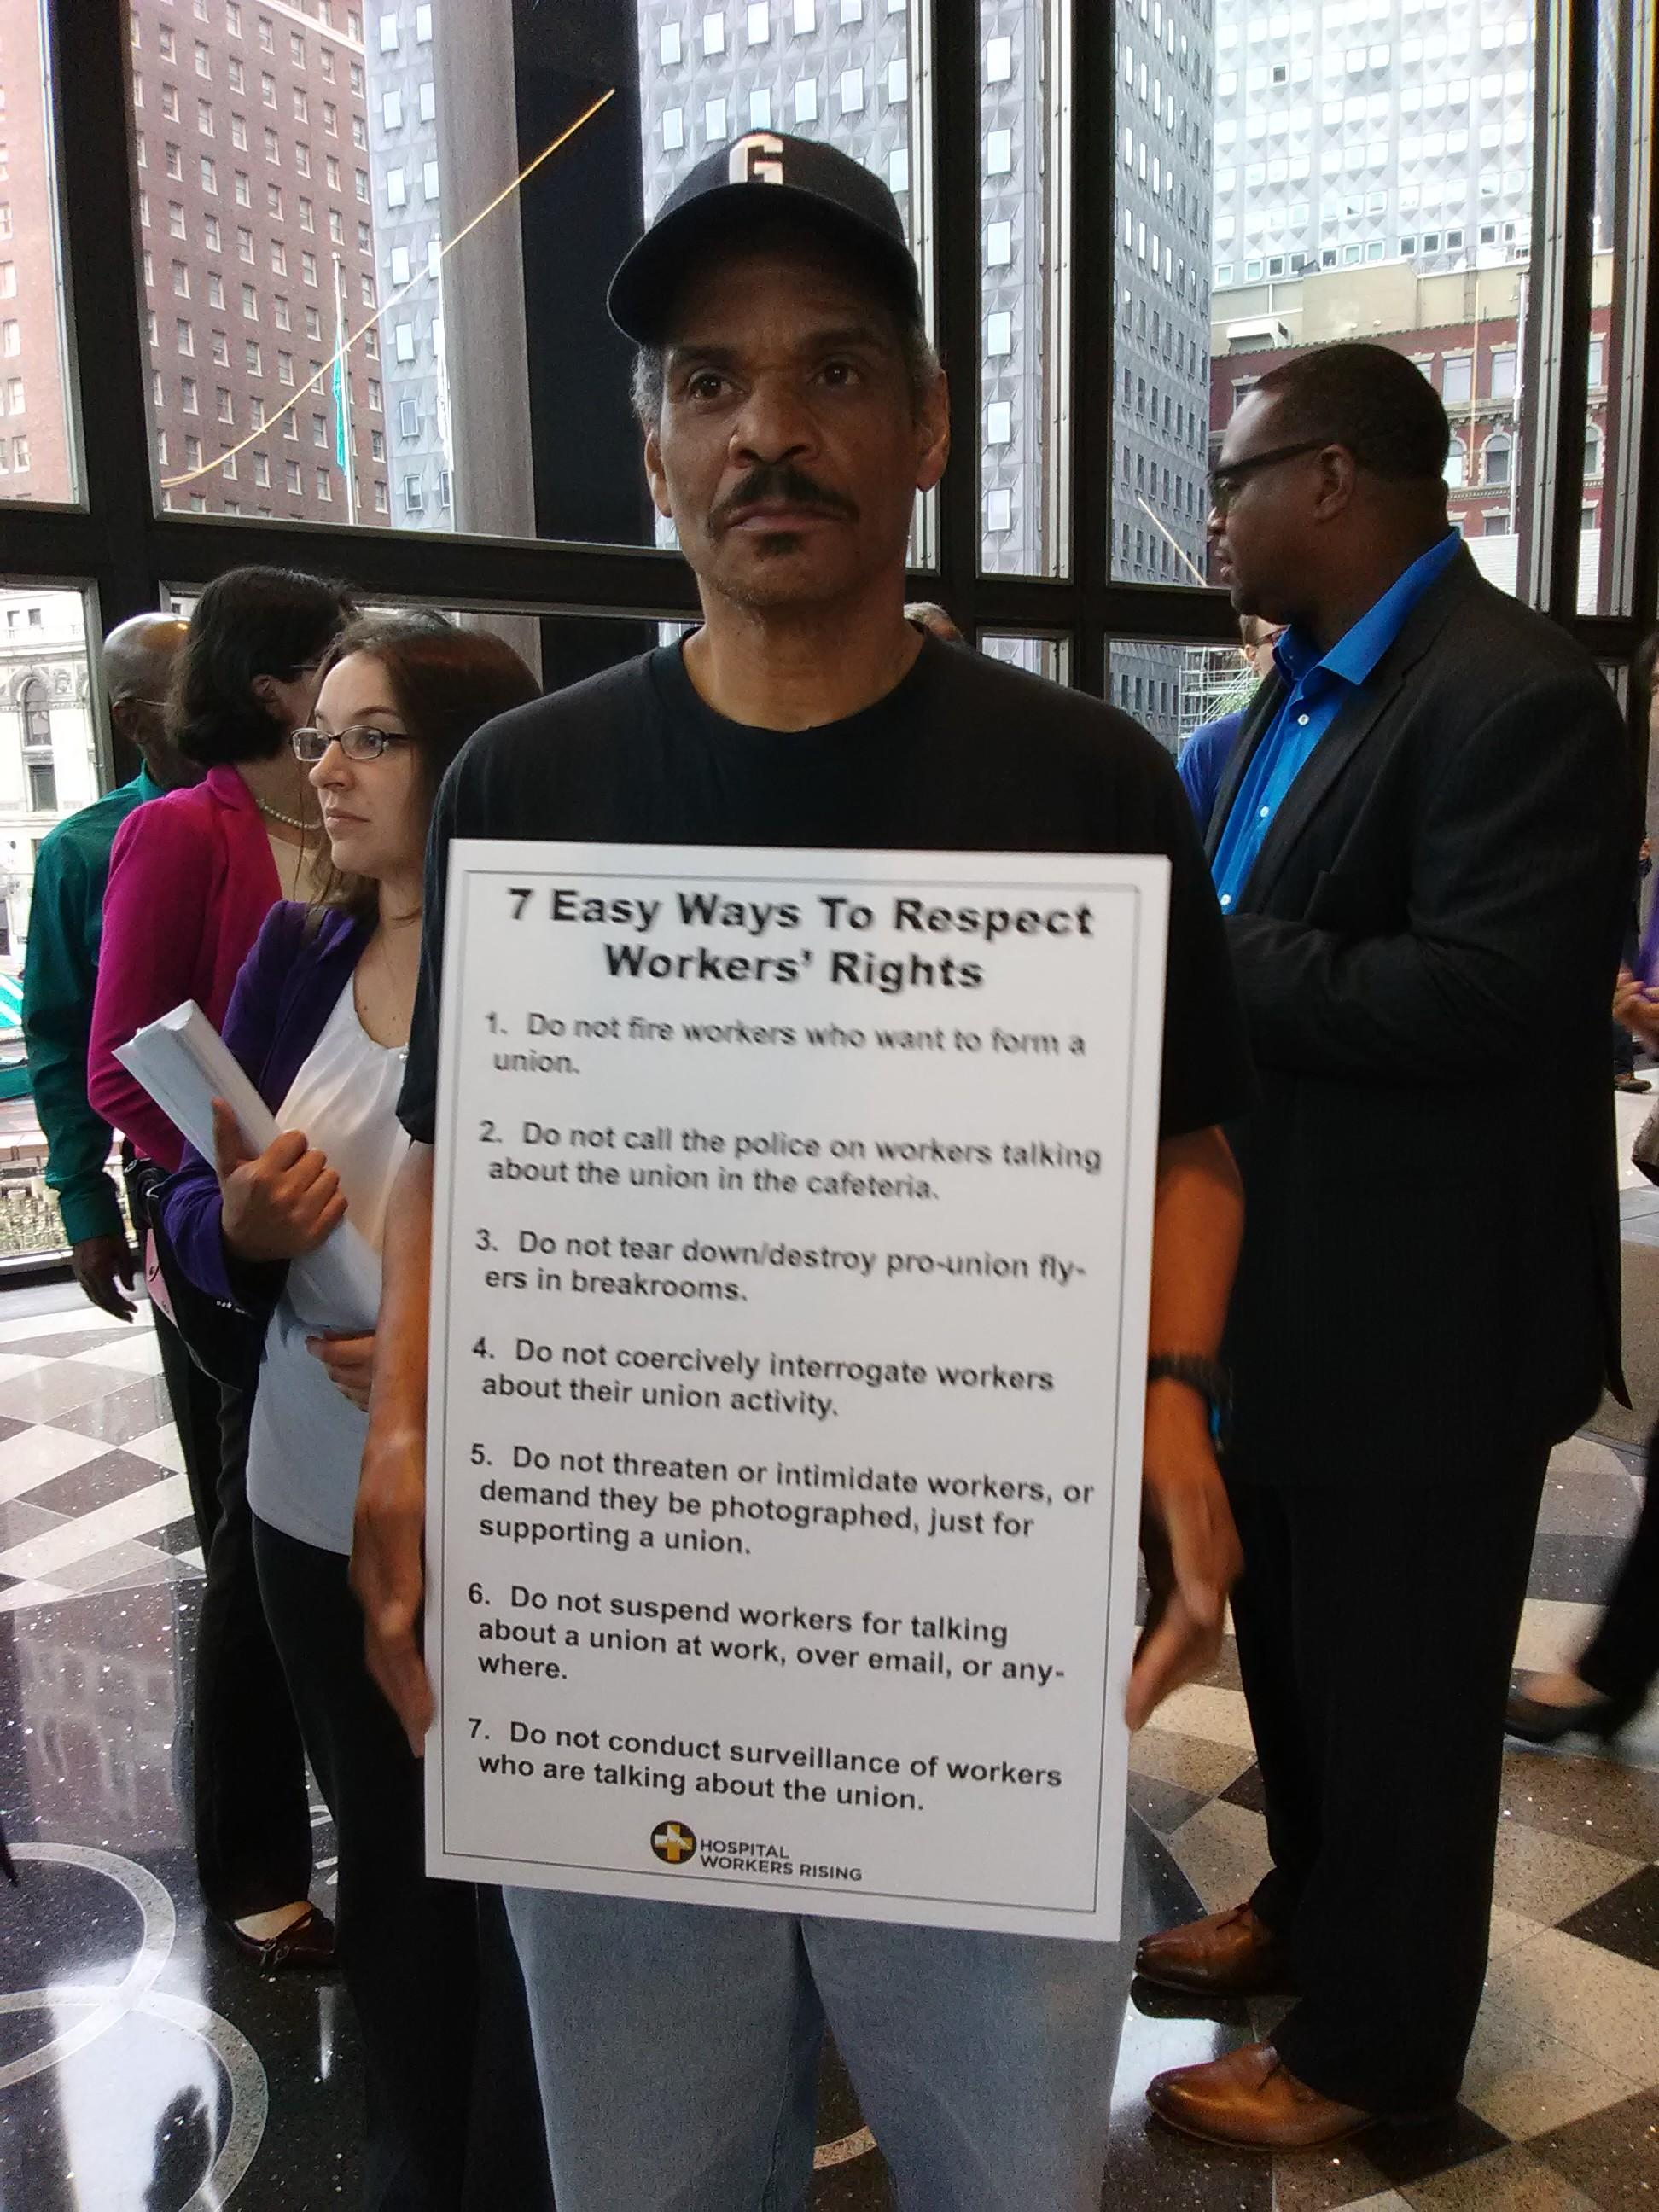 Fear And Intimidation: UPMC Workers Rally To Highlight